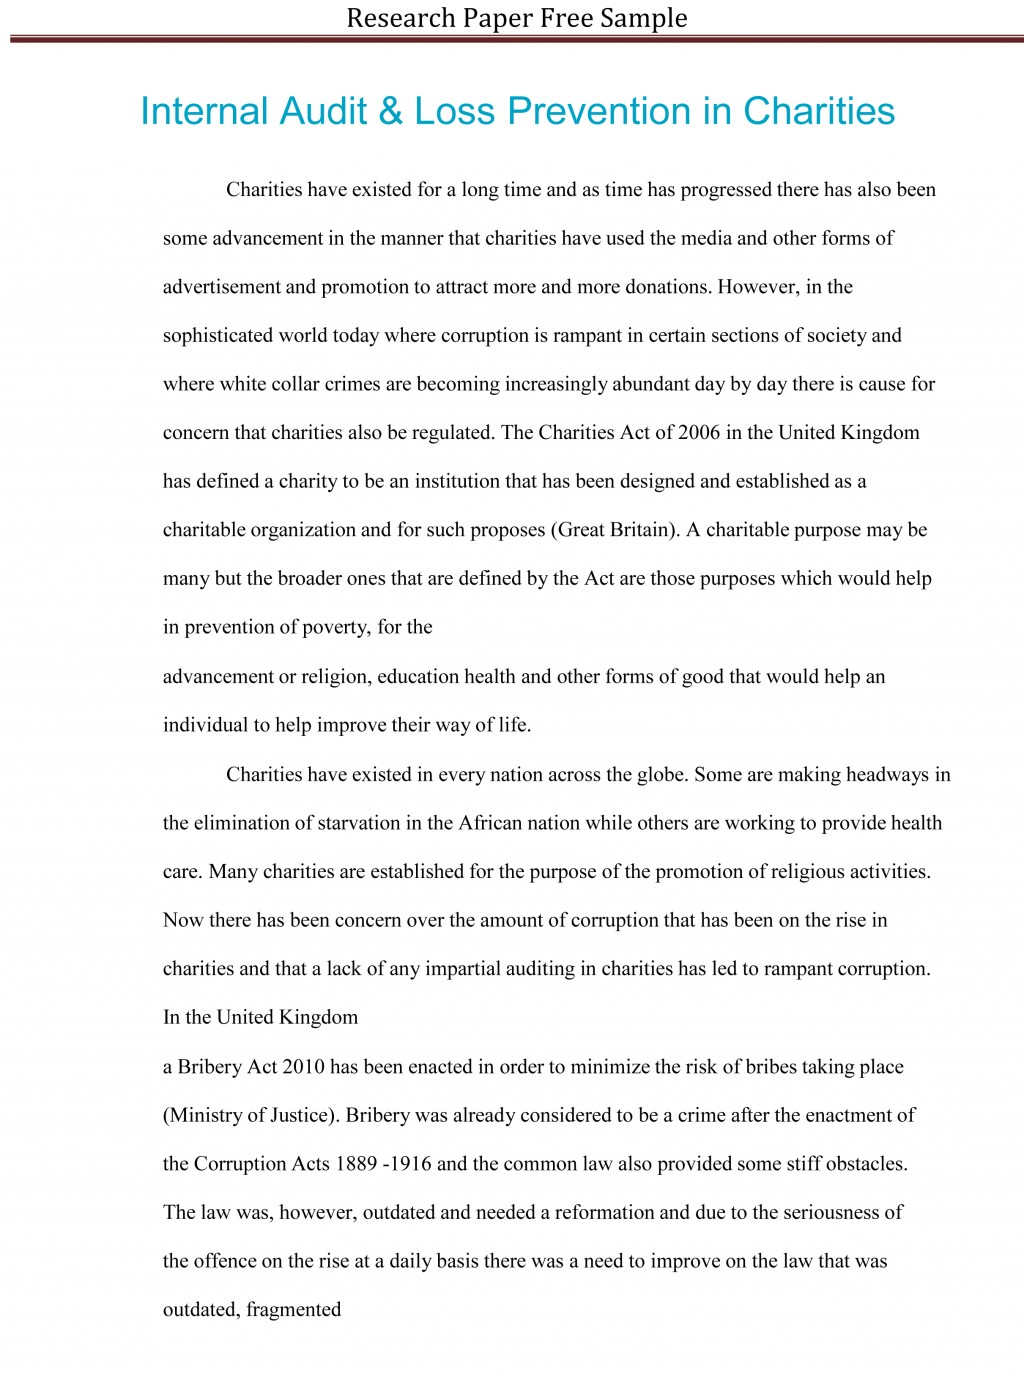 003 Research Paper Sample Awful Free Papers Examples Download Websites Writer Large